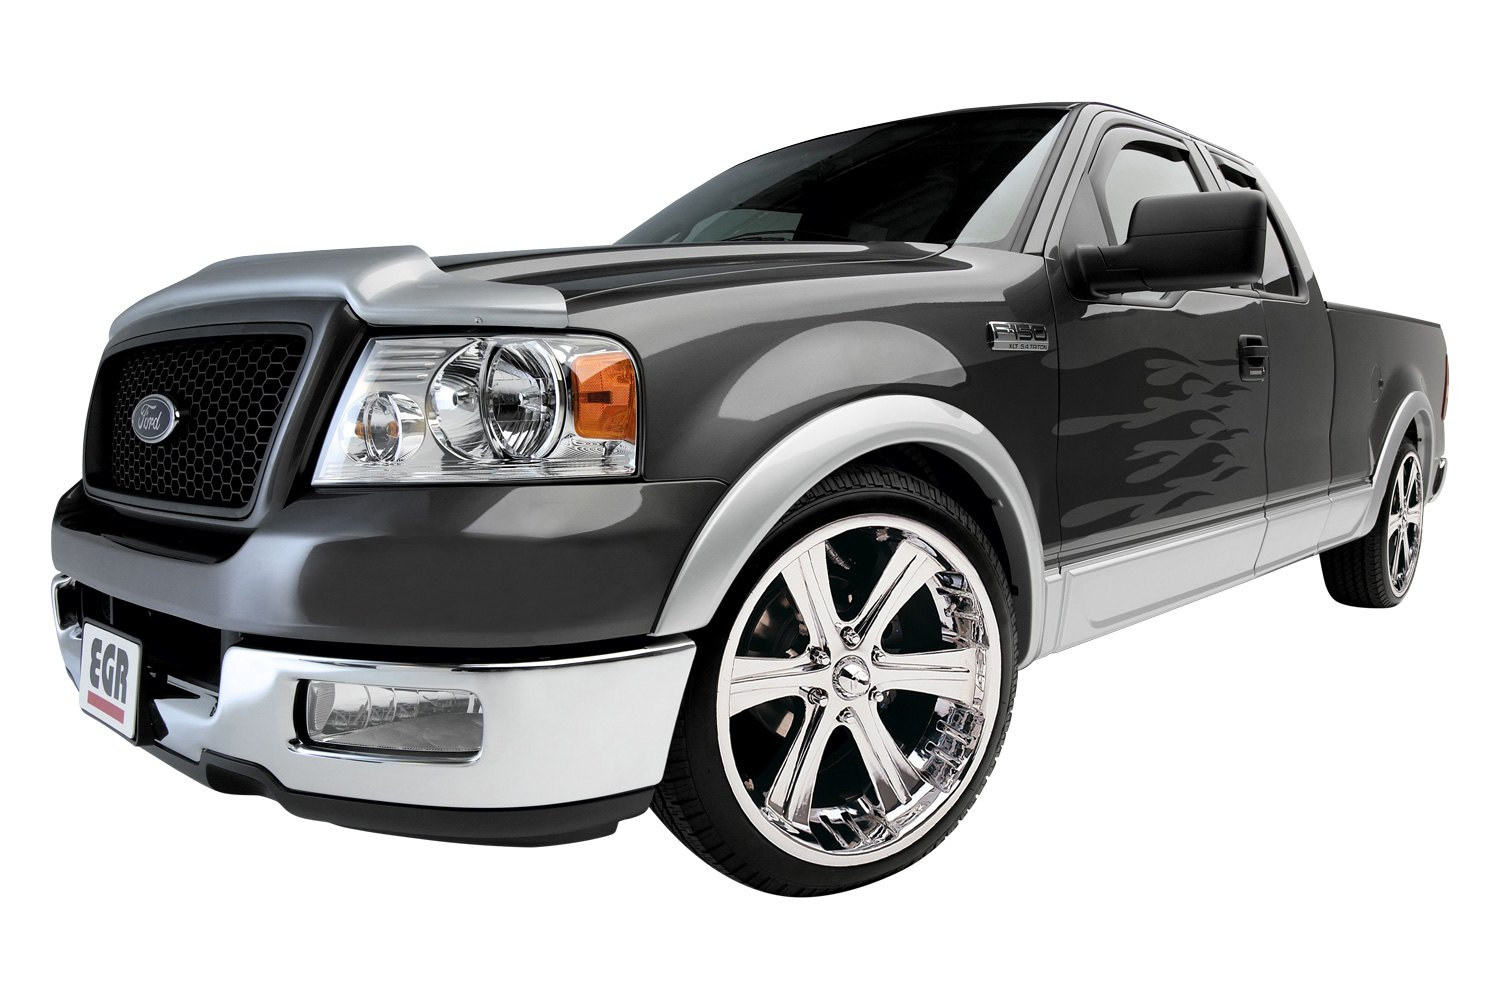 egr ford f 150 2008 oe fender flares. Black Bedroom Furniture Sets. Home Design Ideas